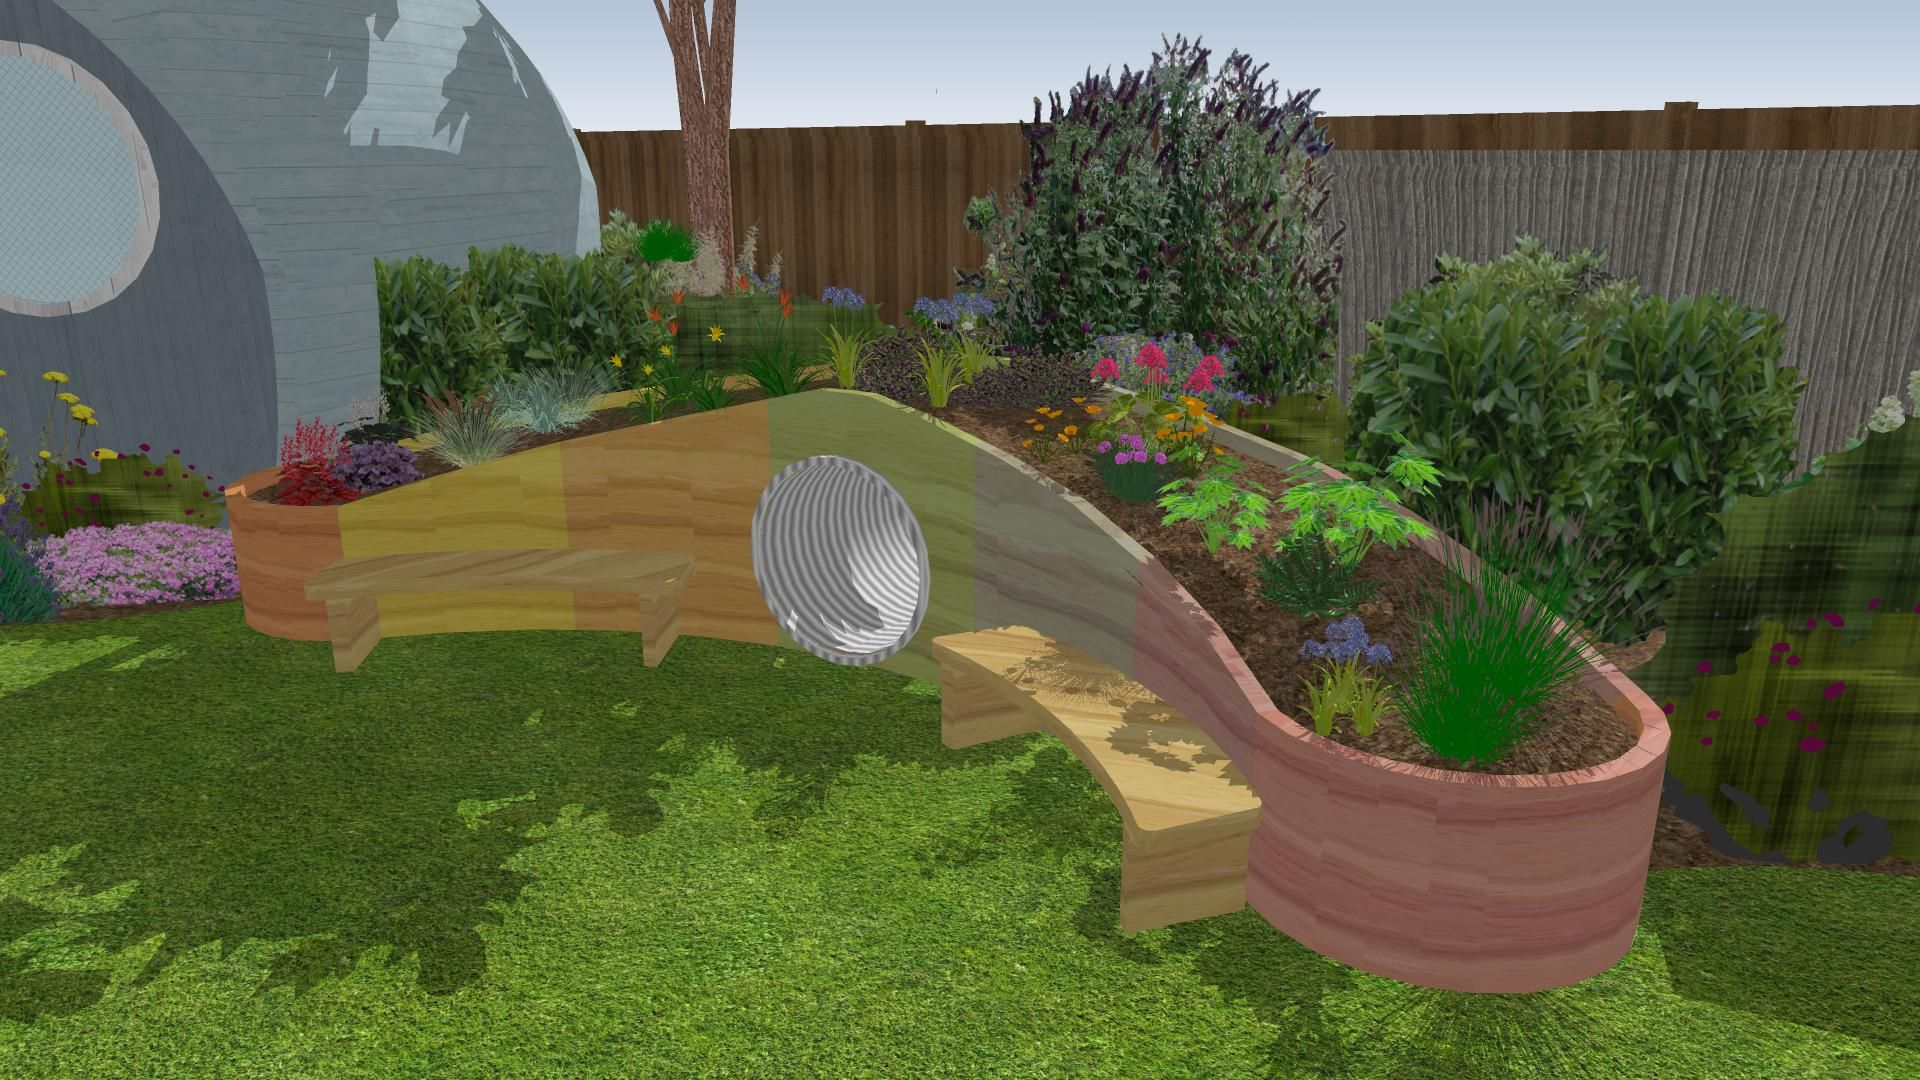 Garden Design For A Primary School Lots Of Fun Features Incorporated To Keep Children Stimulated And Active Garden Design Garden Garden Bridge